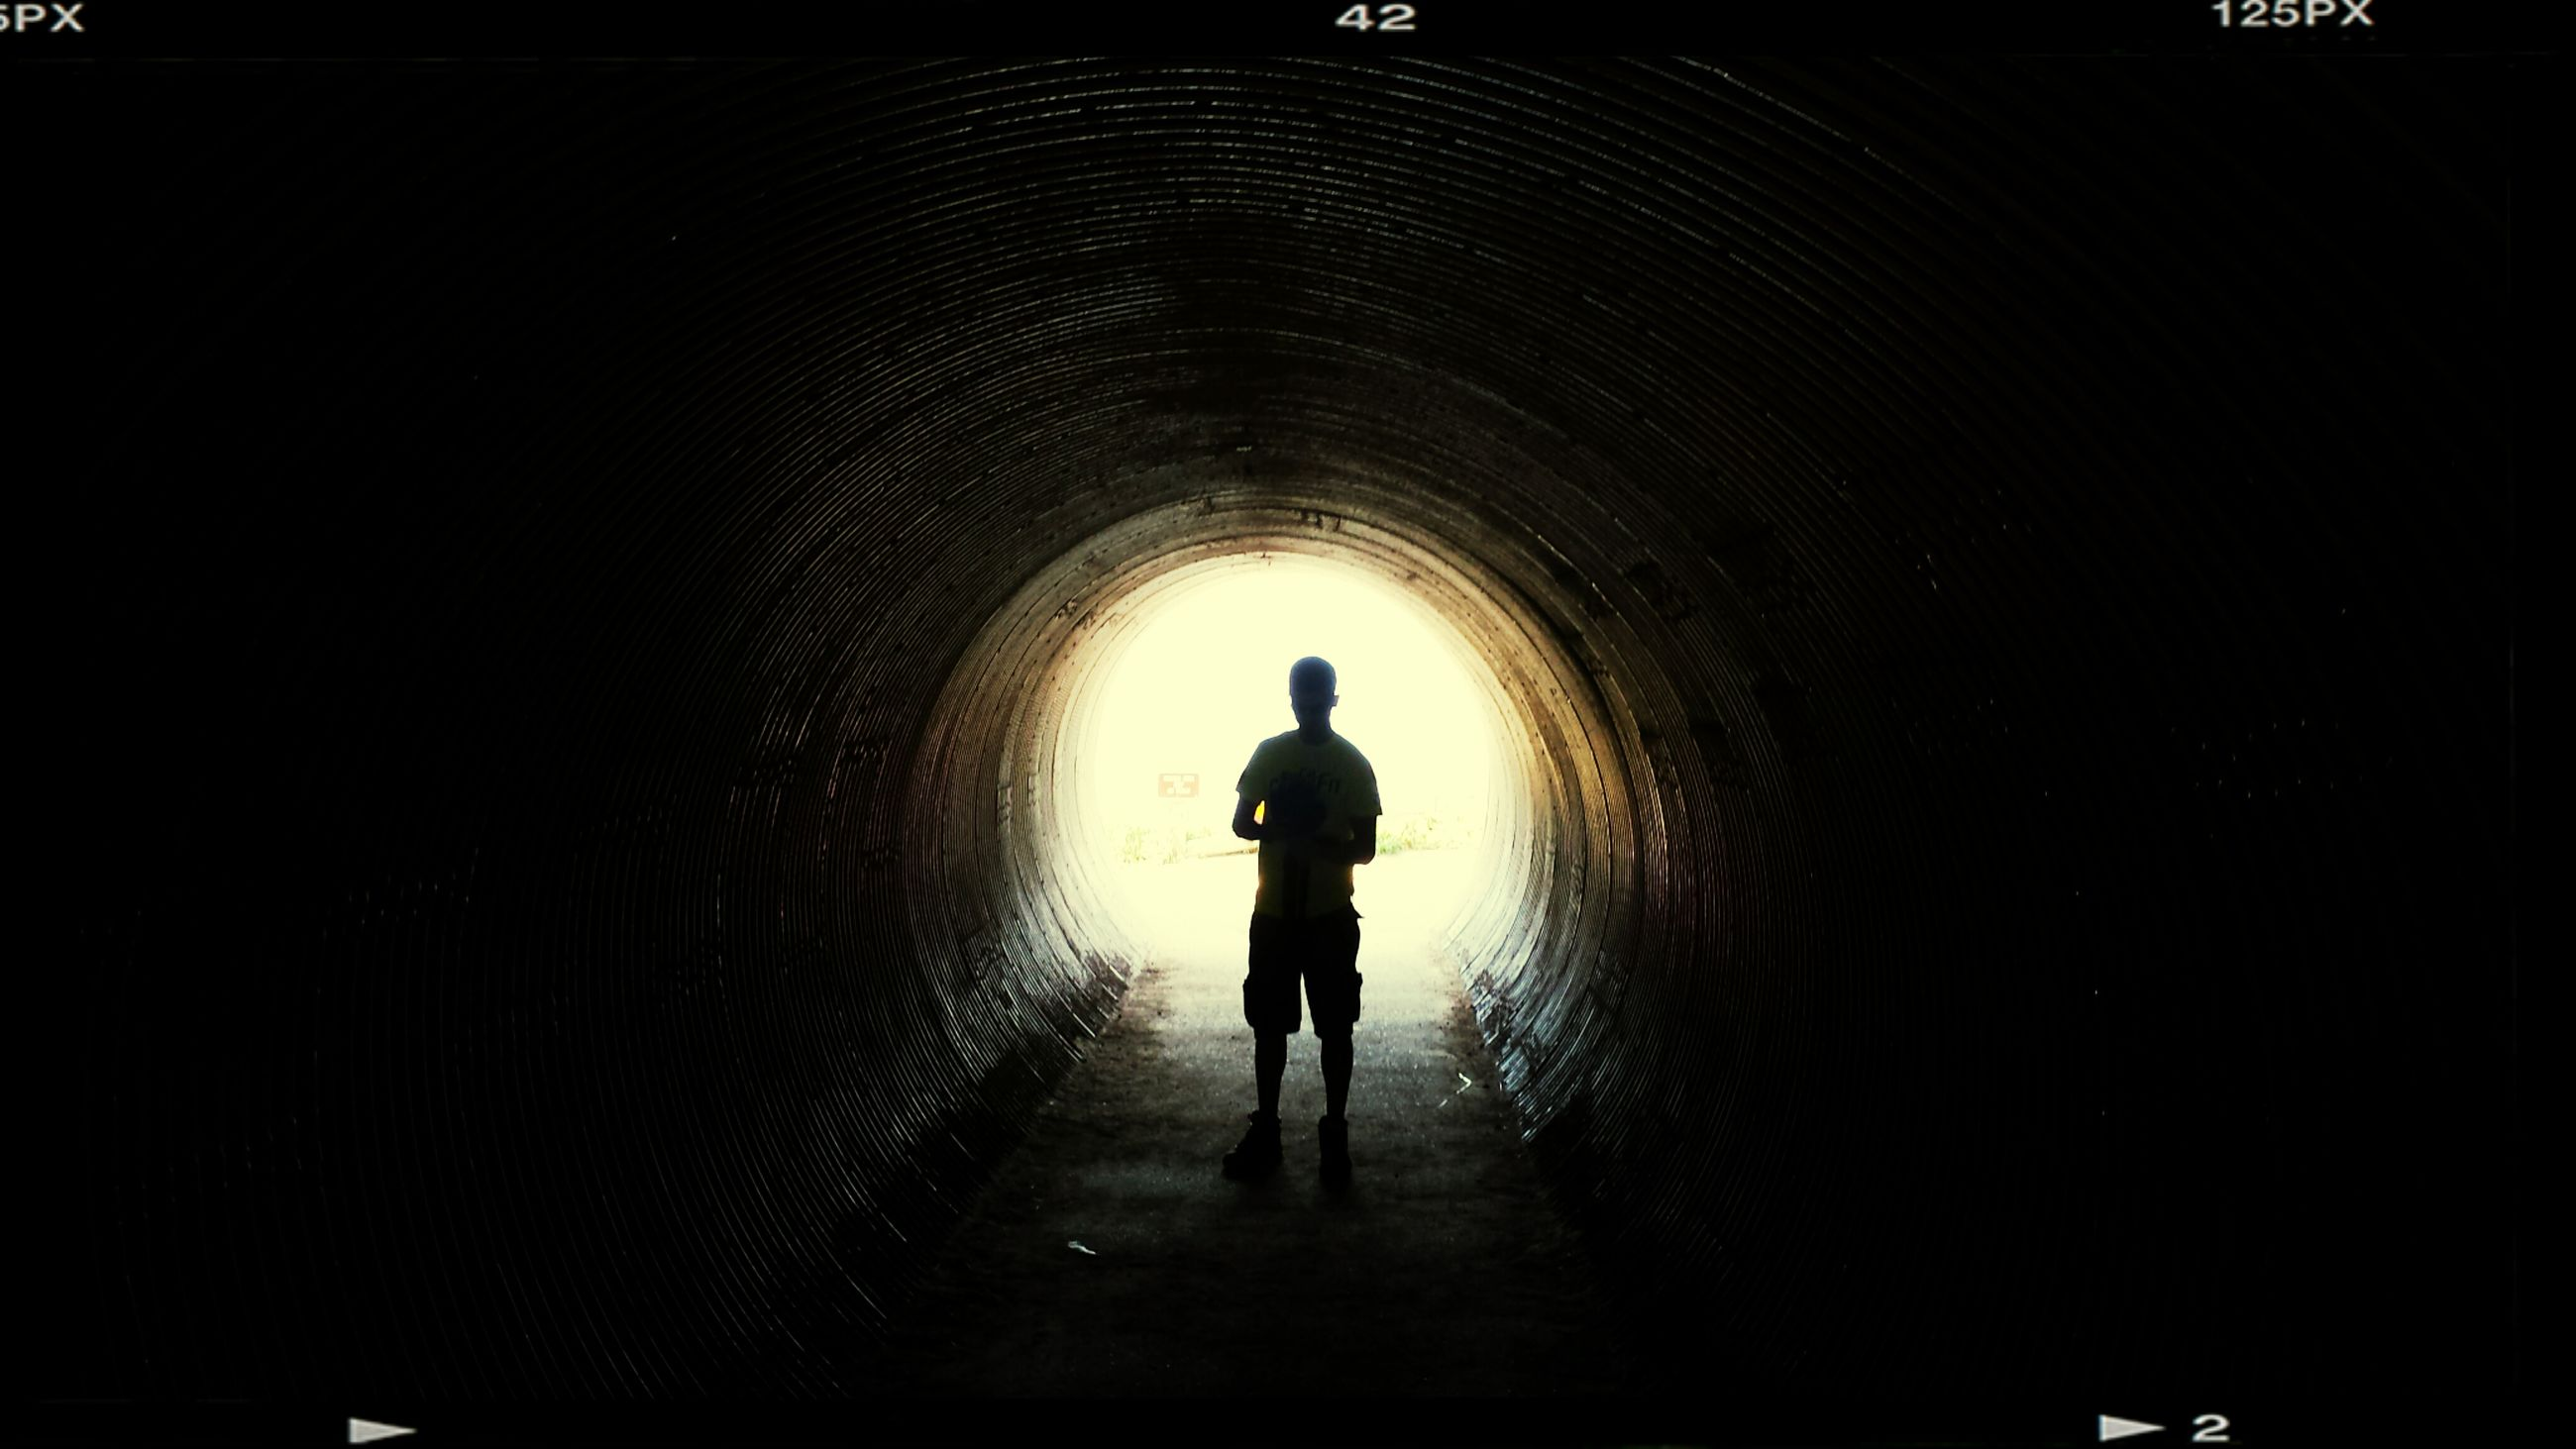 tunnel, indoors, arch, full length, lifestyles, silhouette, walking, men, rear view, light at the end of the tunnel, leisure activity, dark, standing, architecture, built structure, illuminated, archway, the way forward